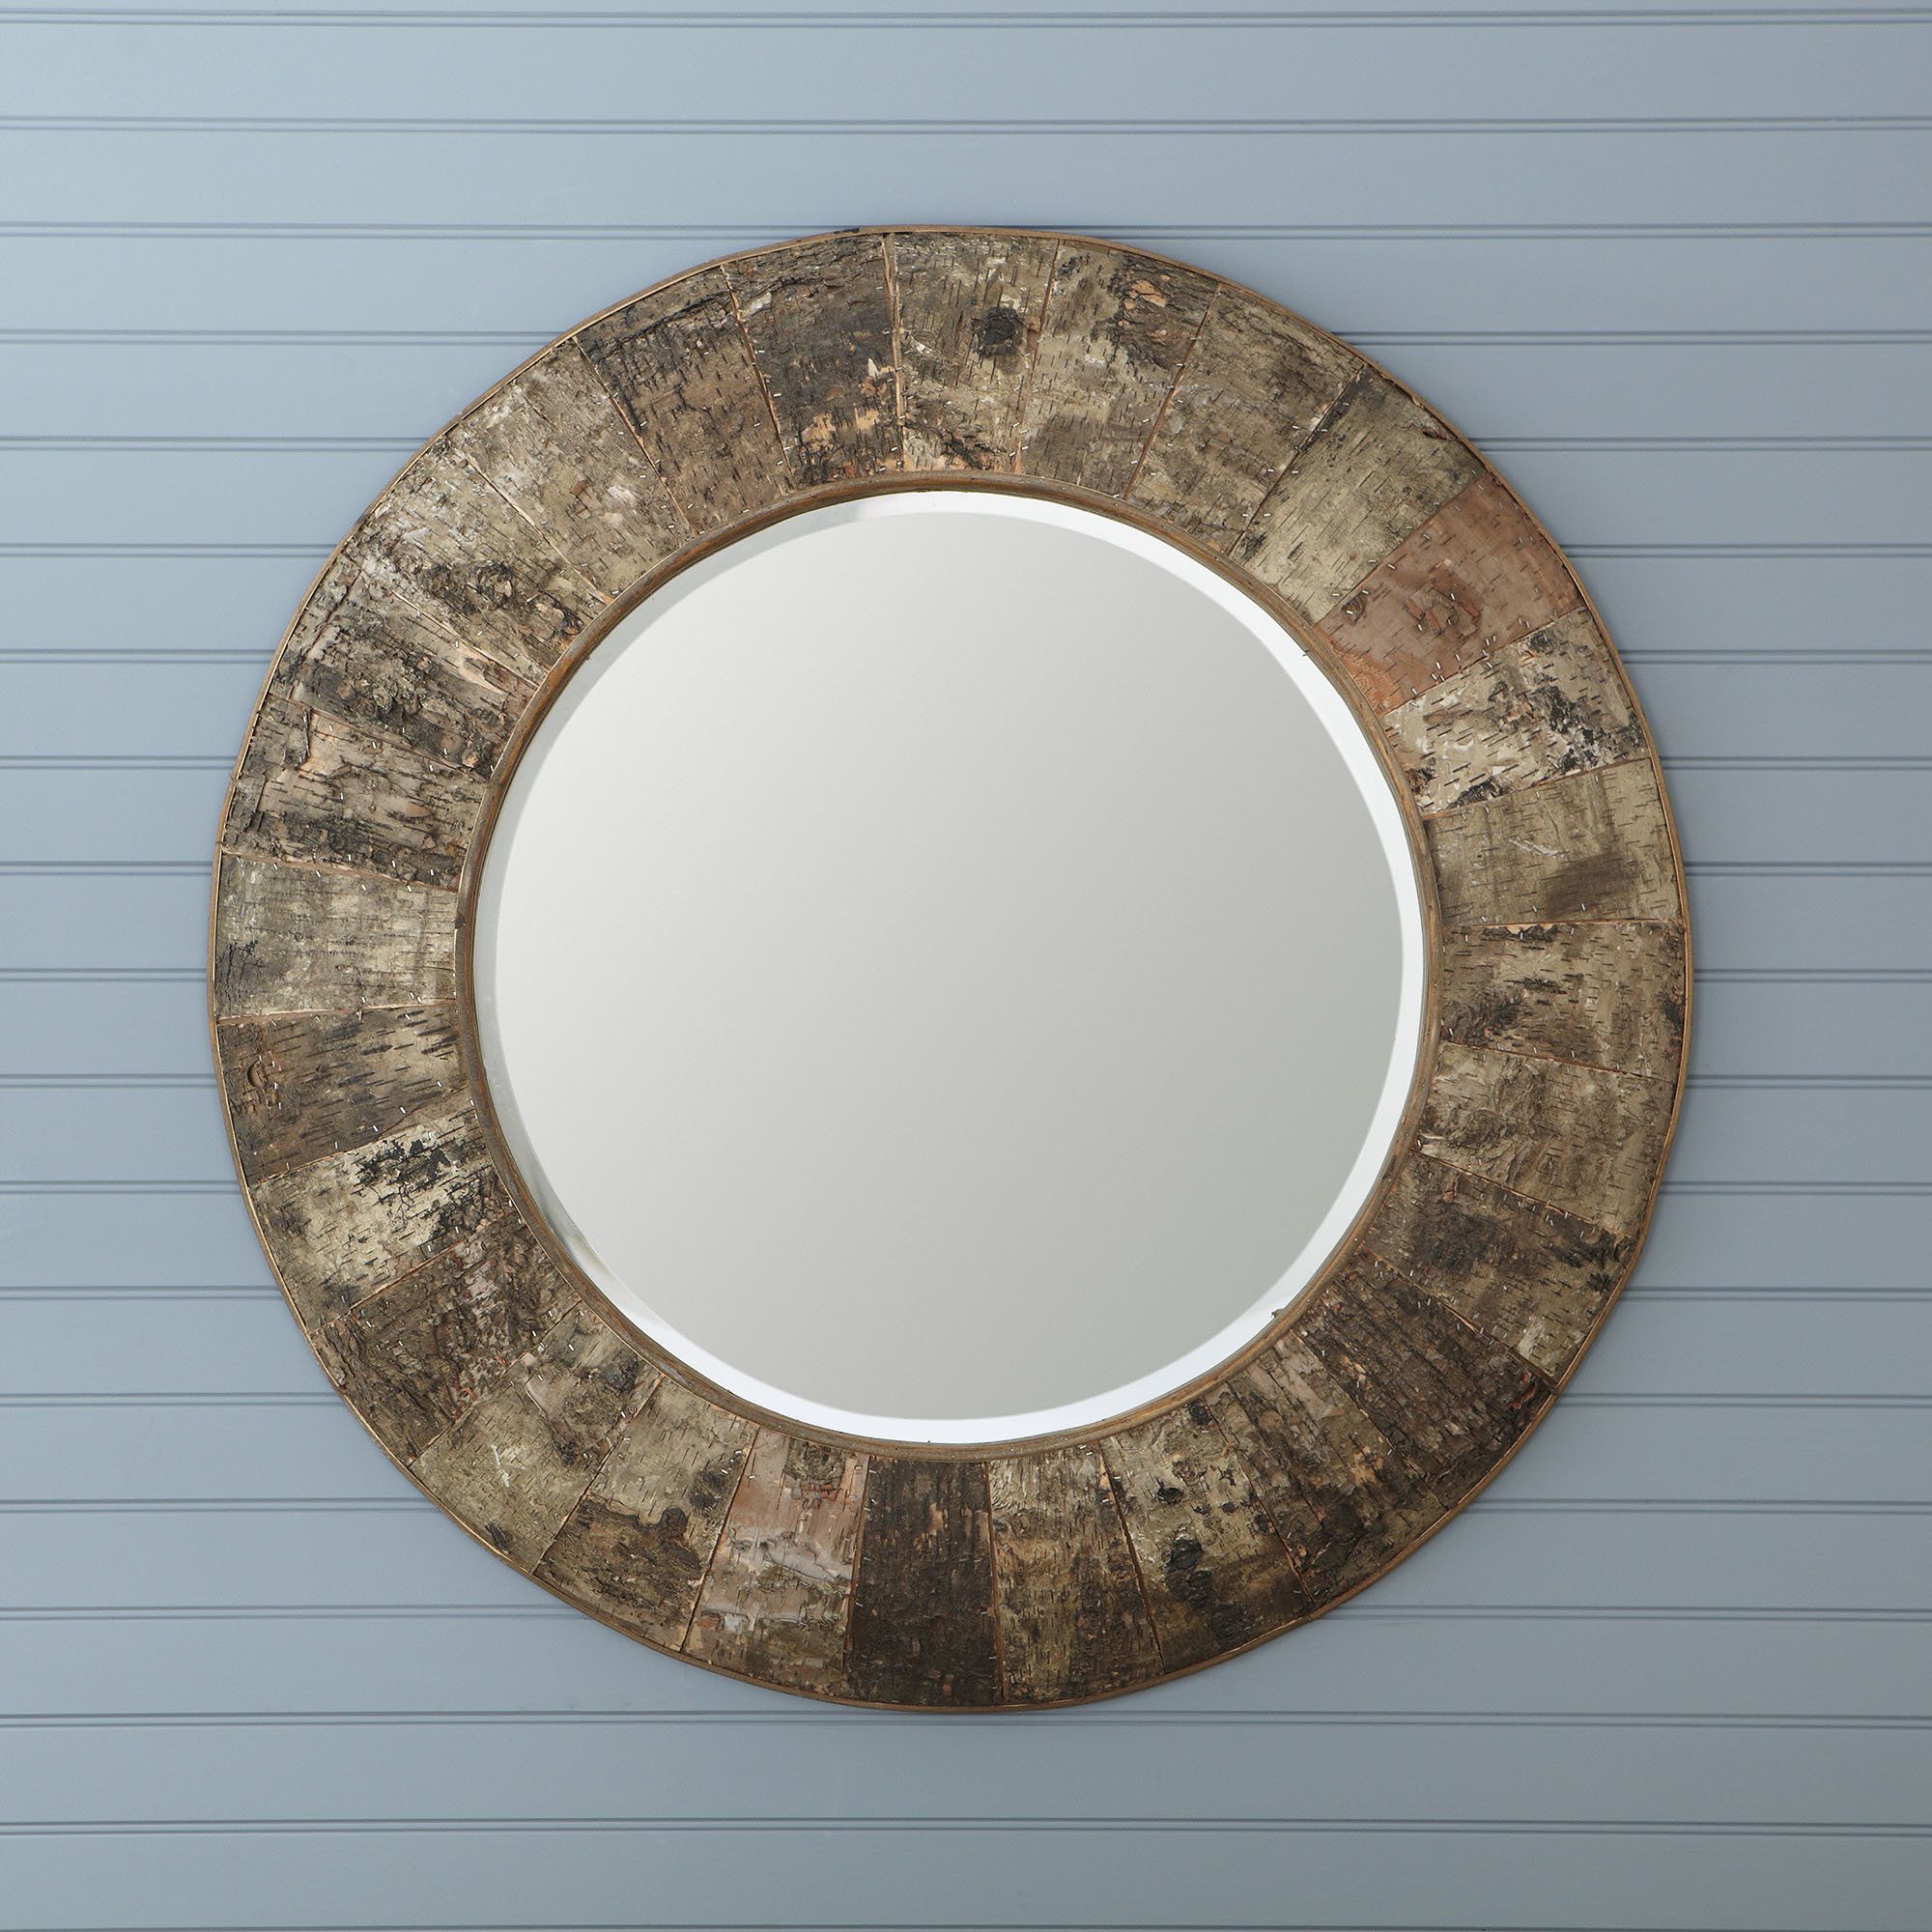 Farmhouse & Rustic Williston Forge Wall & Accent Mirrors for Koeller Industrial Metal Wall Mirrors (Image 7 of 30)